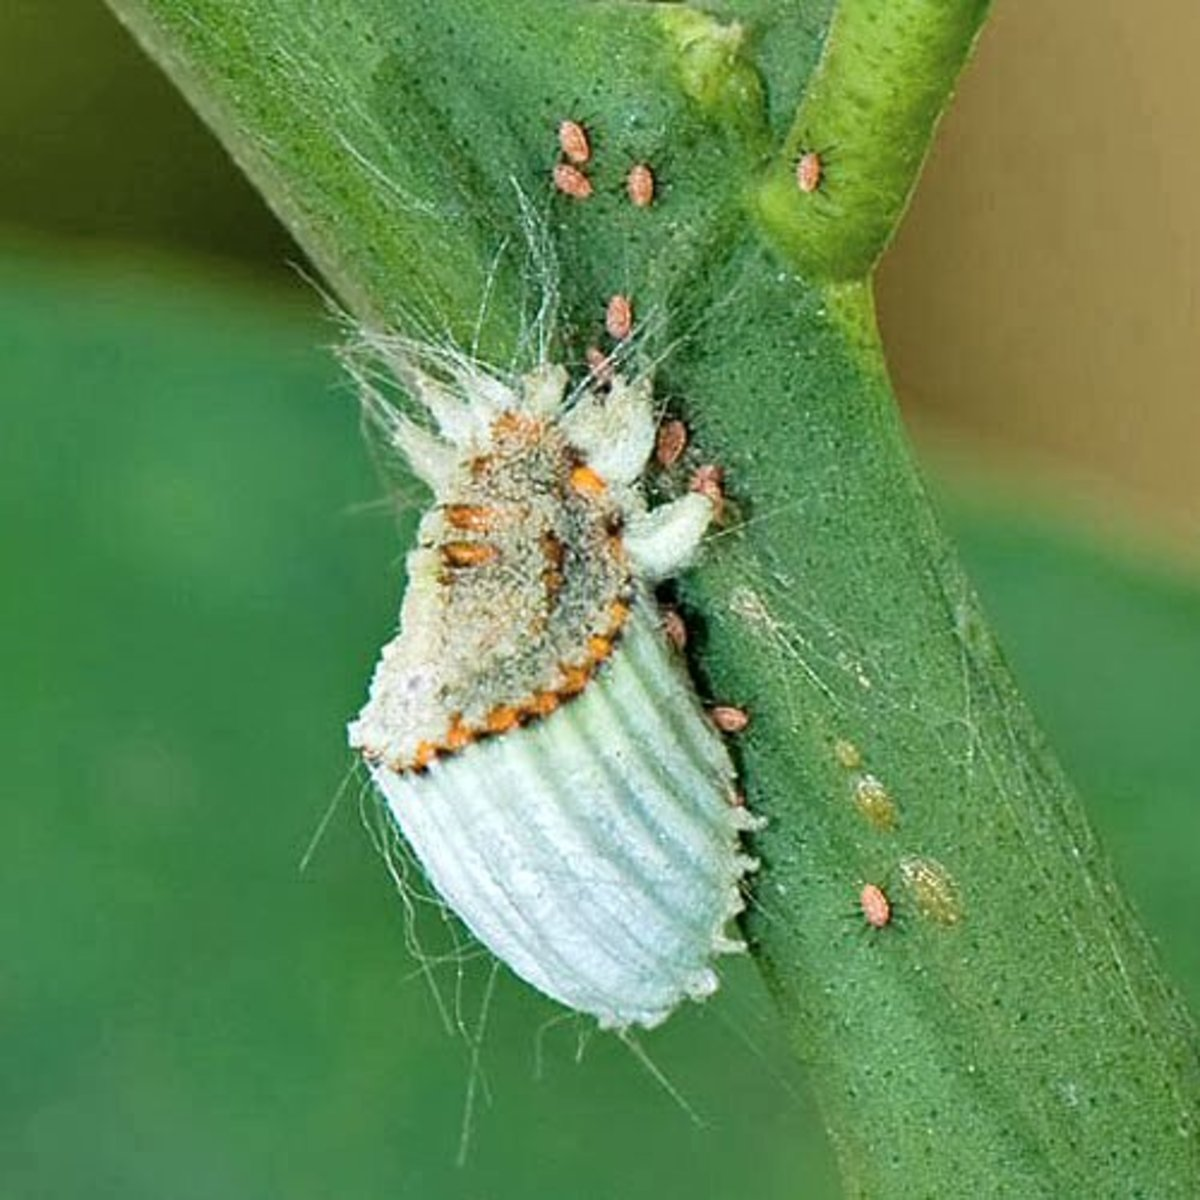 Female with newly hatched crawlers